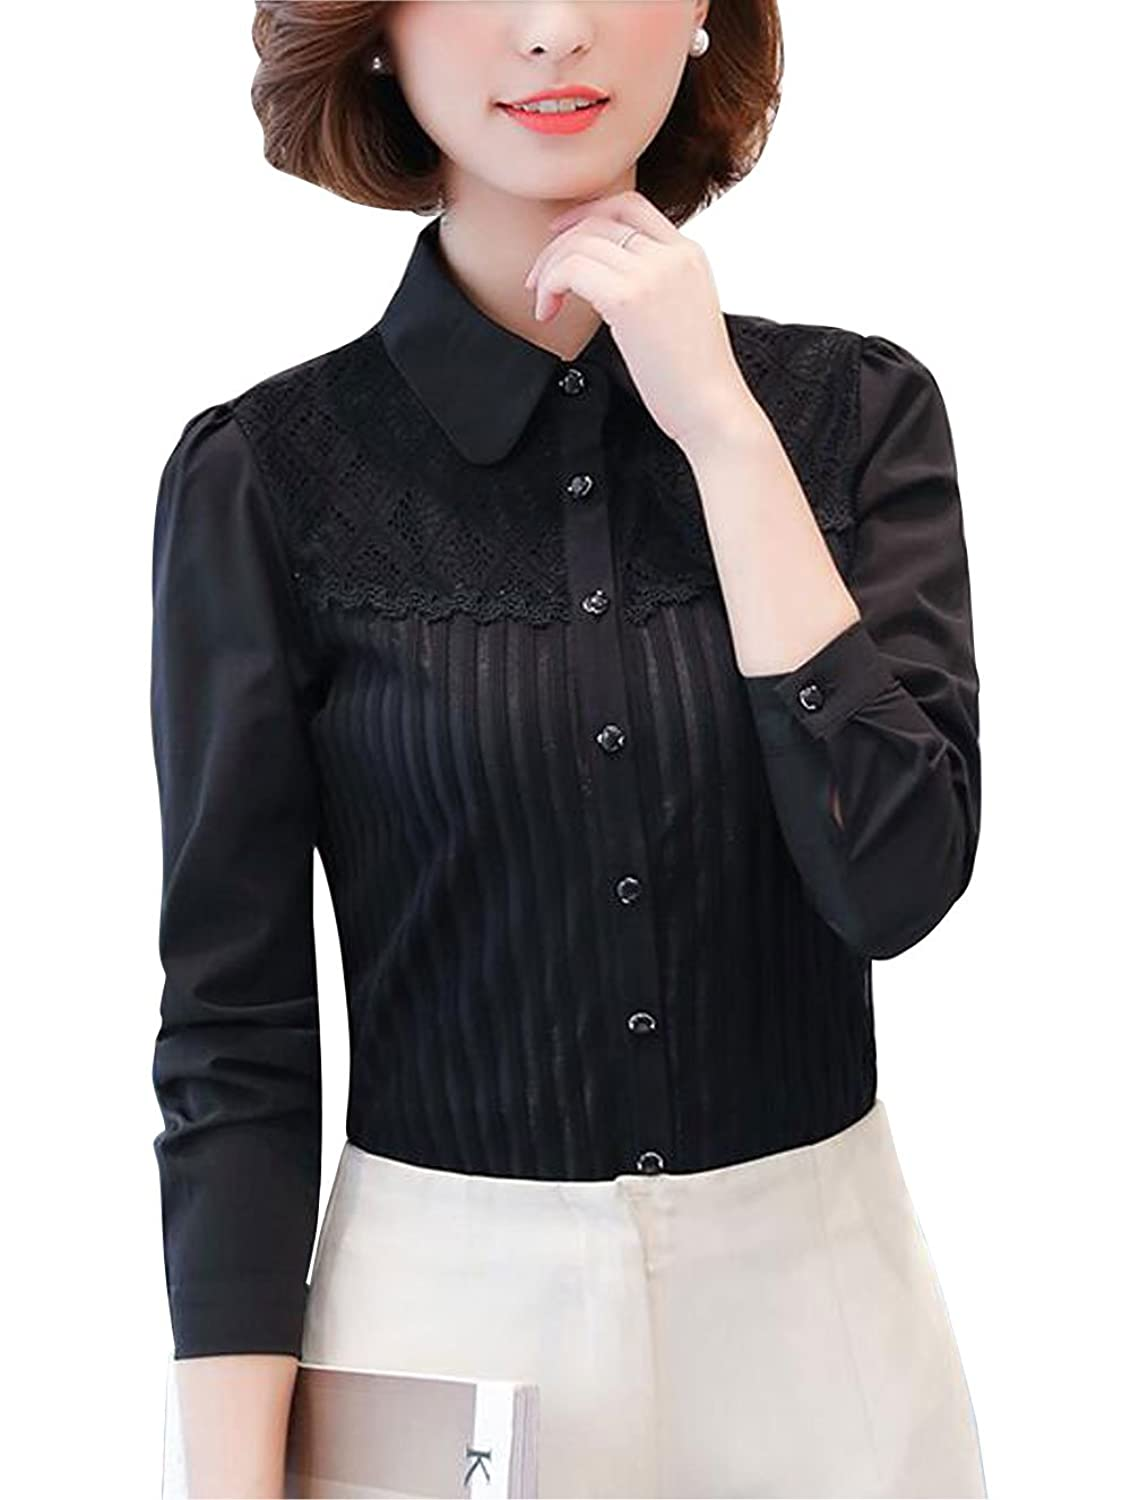 Steampunk Tops | Blouses, Shirts Double Plus Open DPO Womens Vintage Collared Pleated Button Down Shirt Long Sleeve Lace Stretchy Blouse $23.59 AT vintagedancer.com